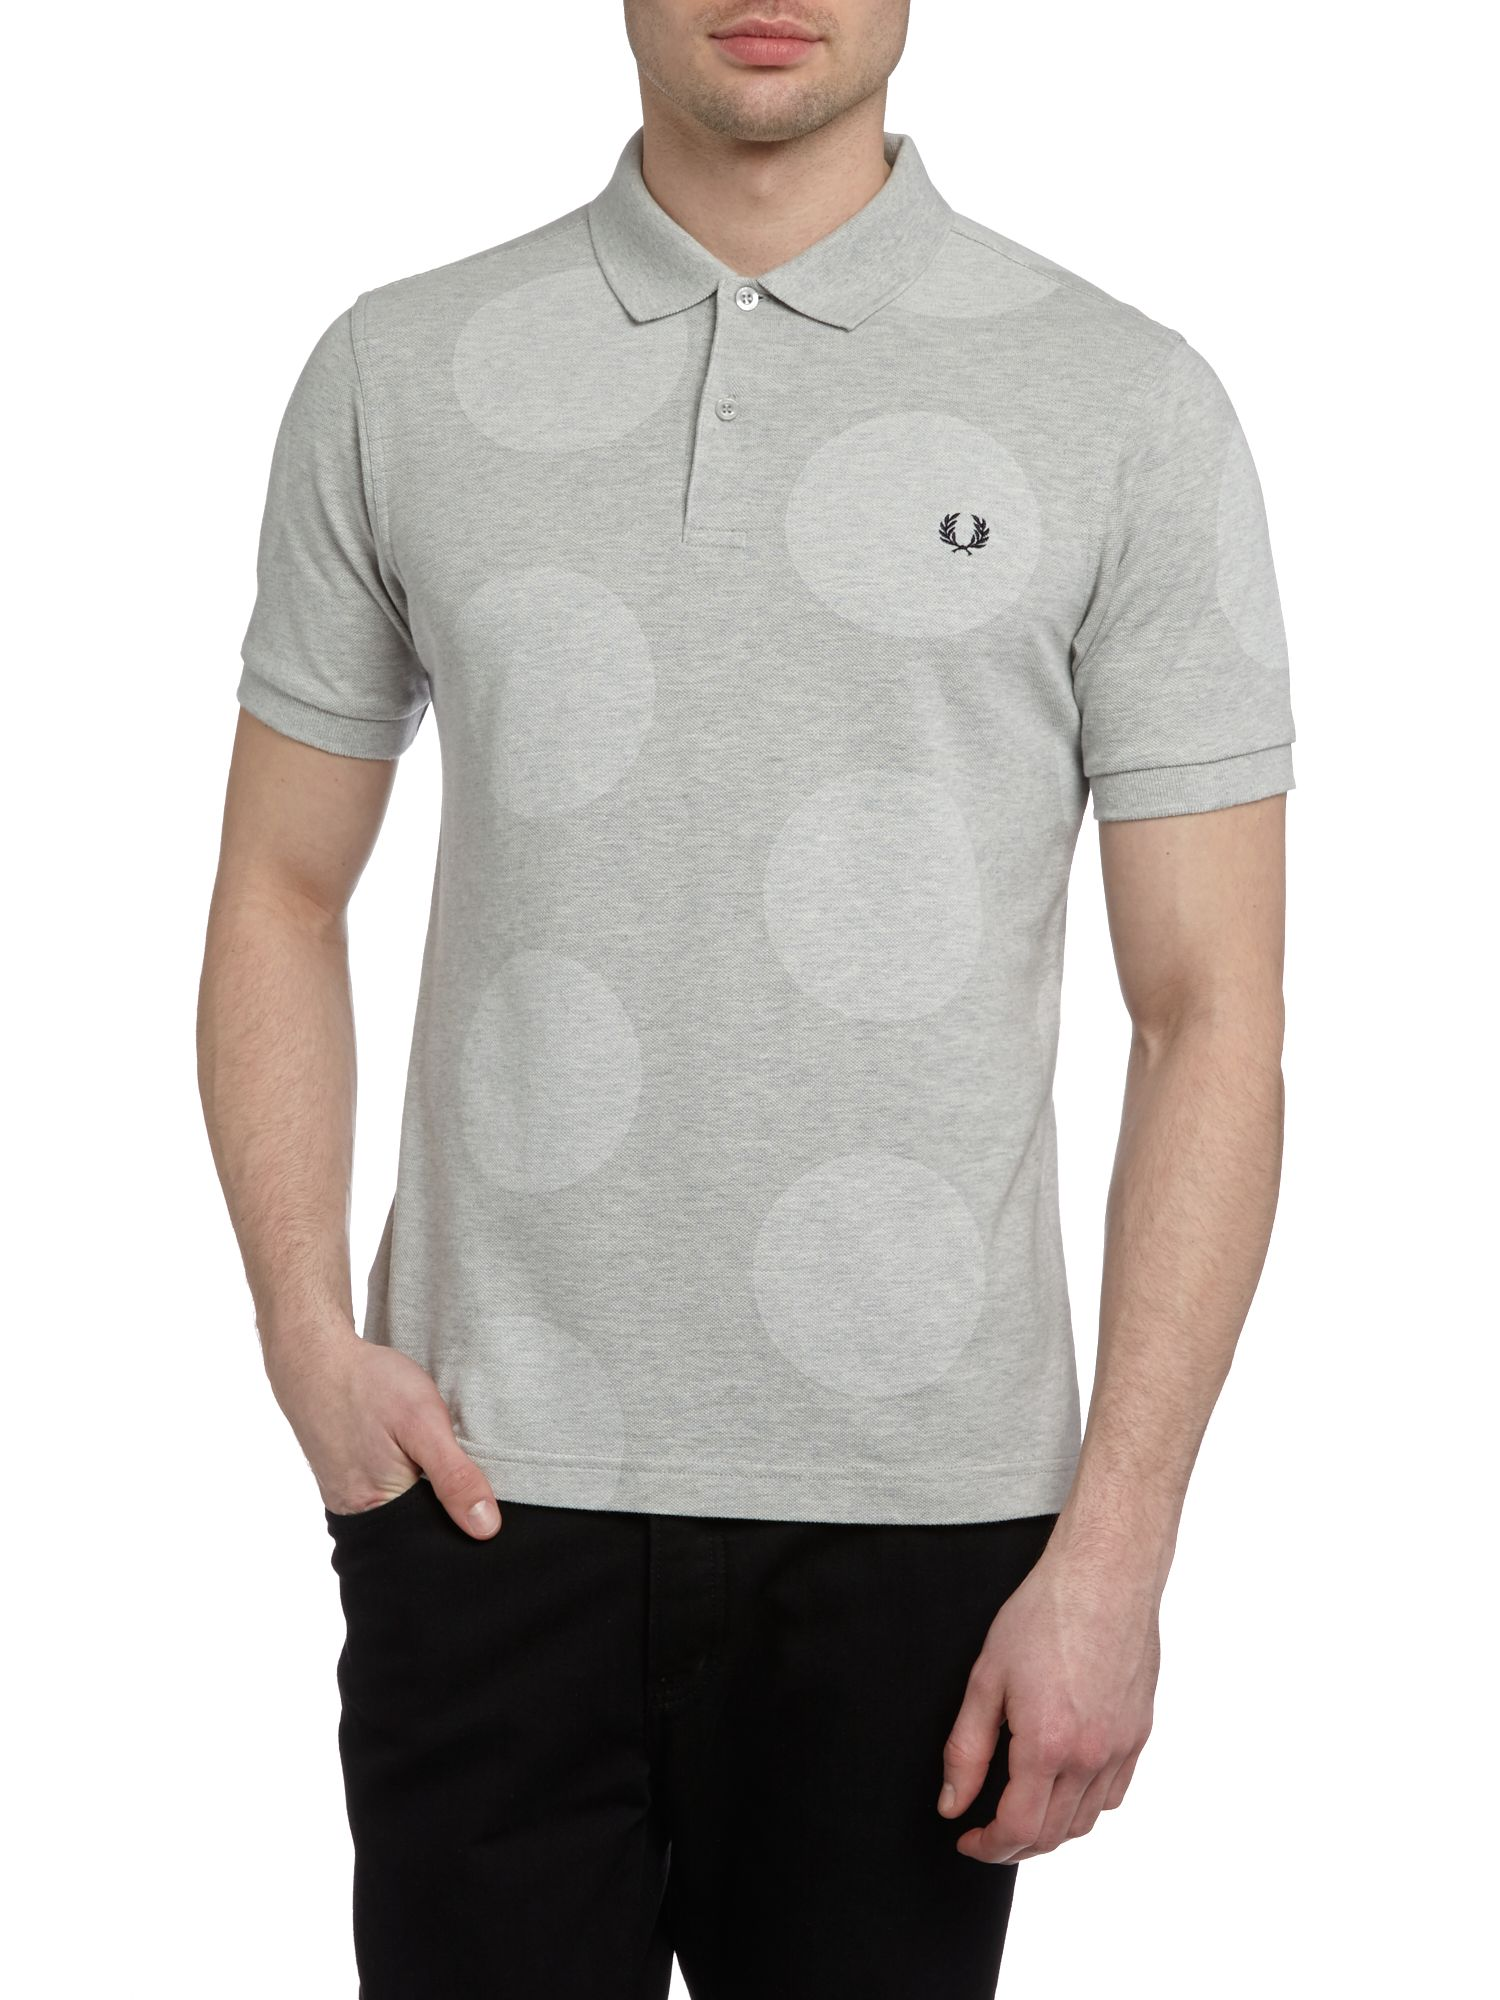 Magnified polka dot polo shirt